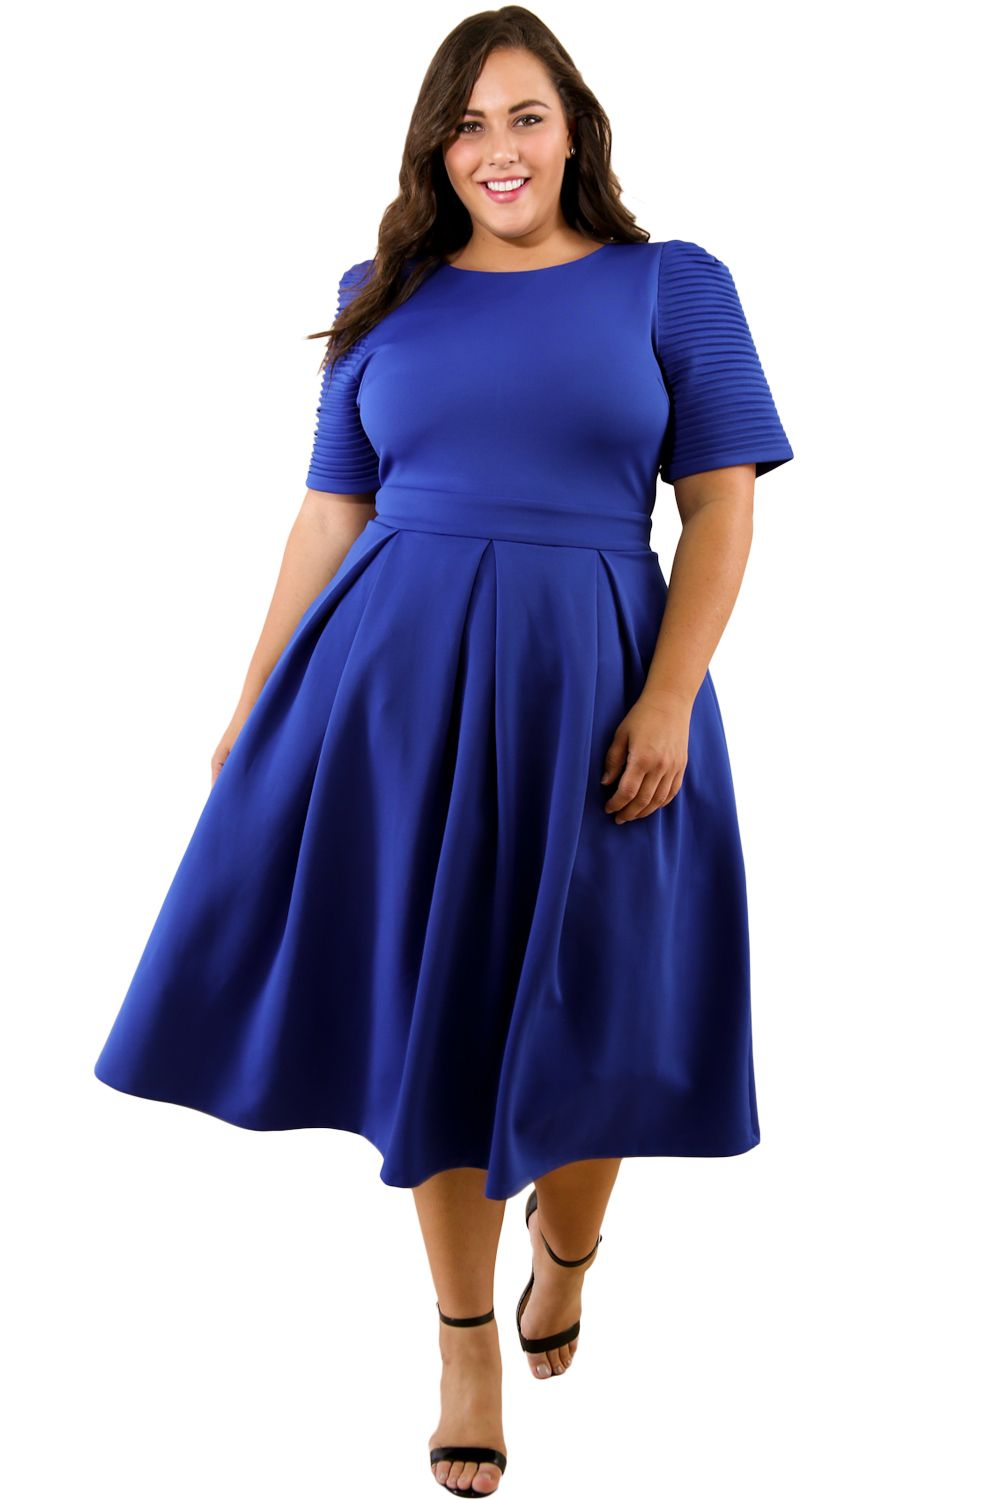 297f6c00cad Blue Plus Size Pleat Flare Dress in 2019